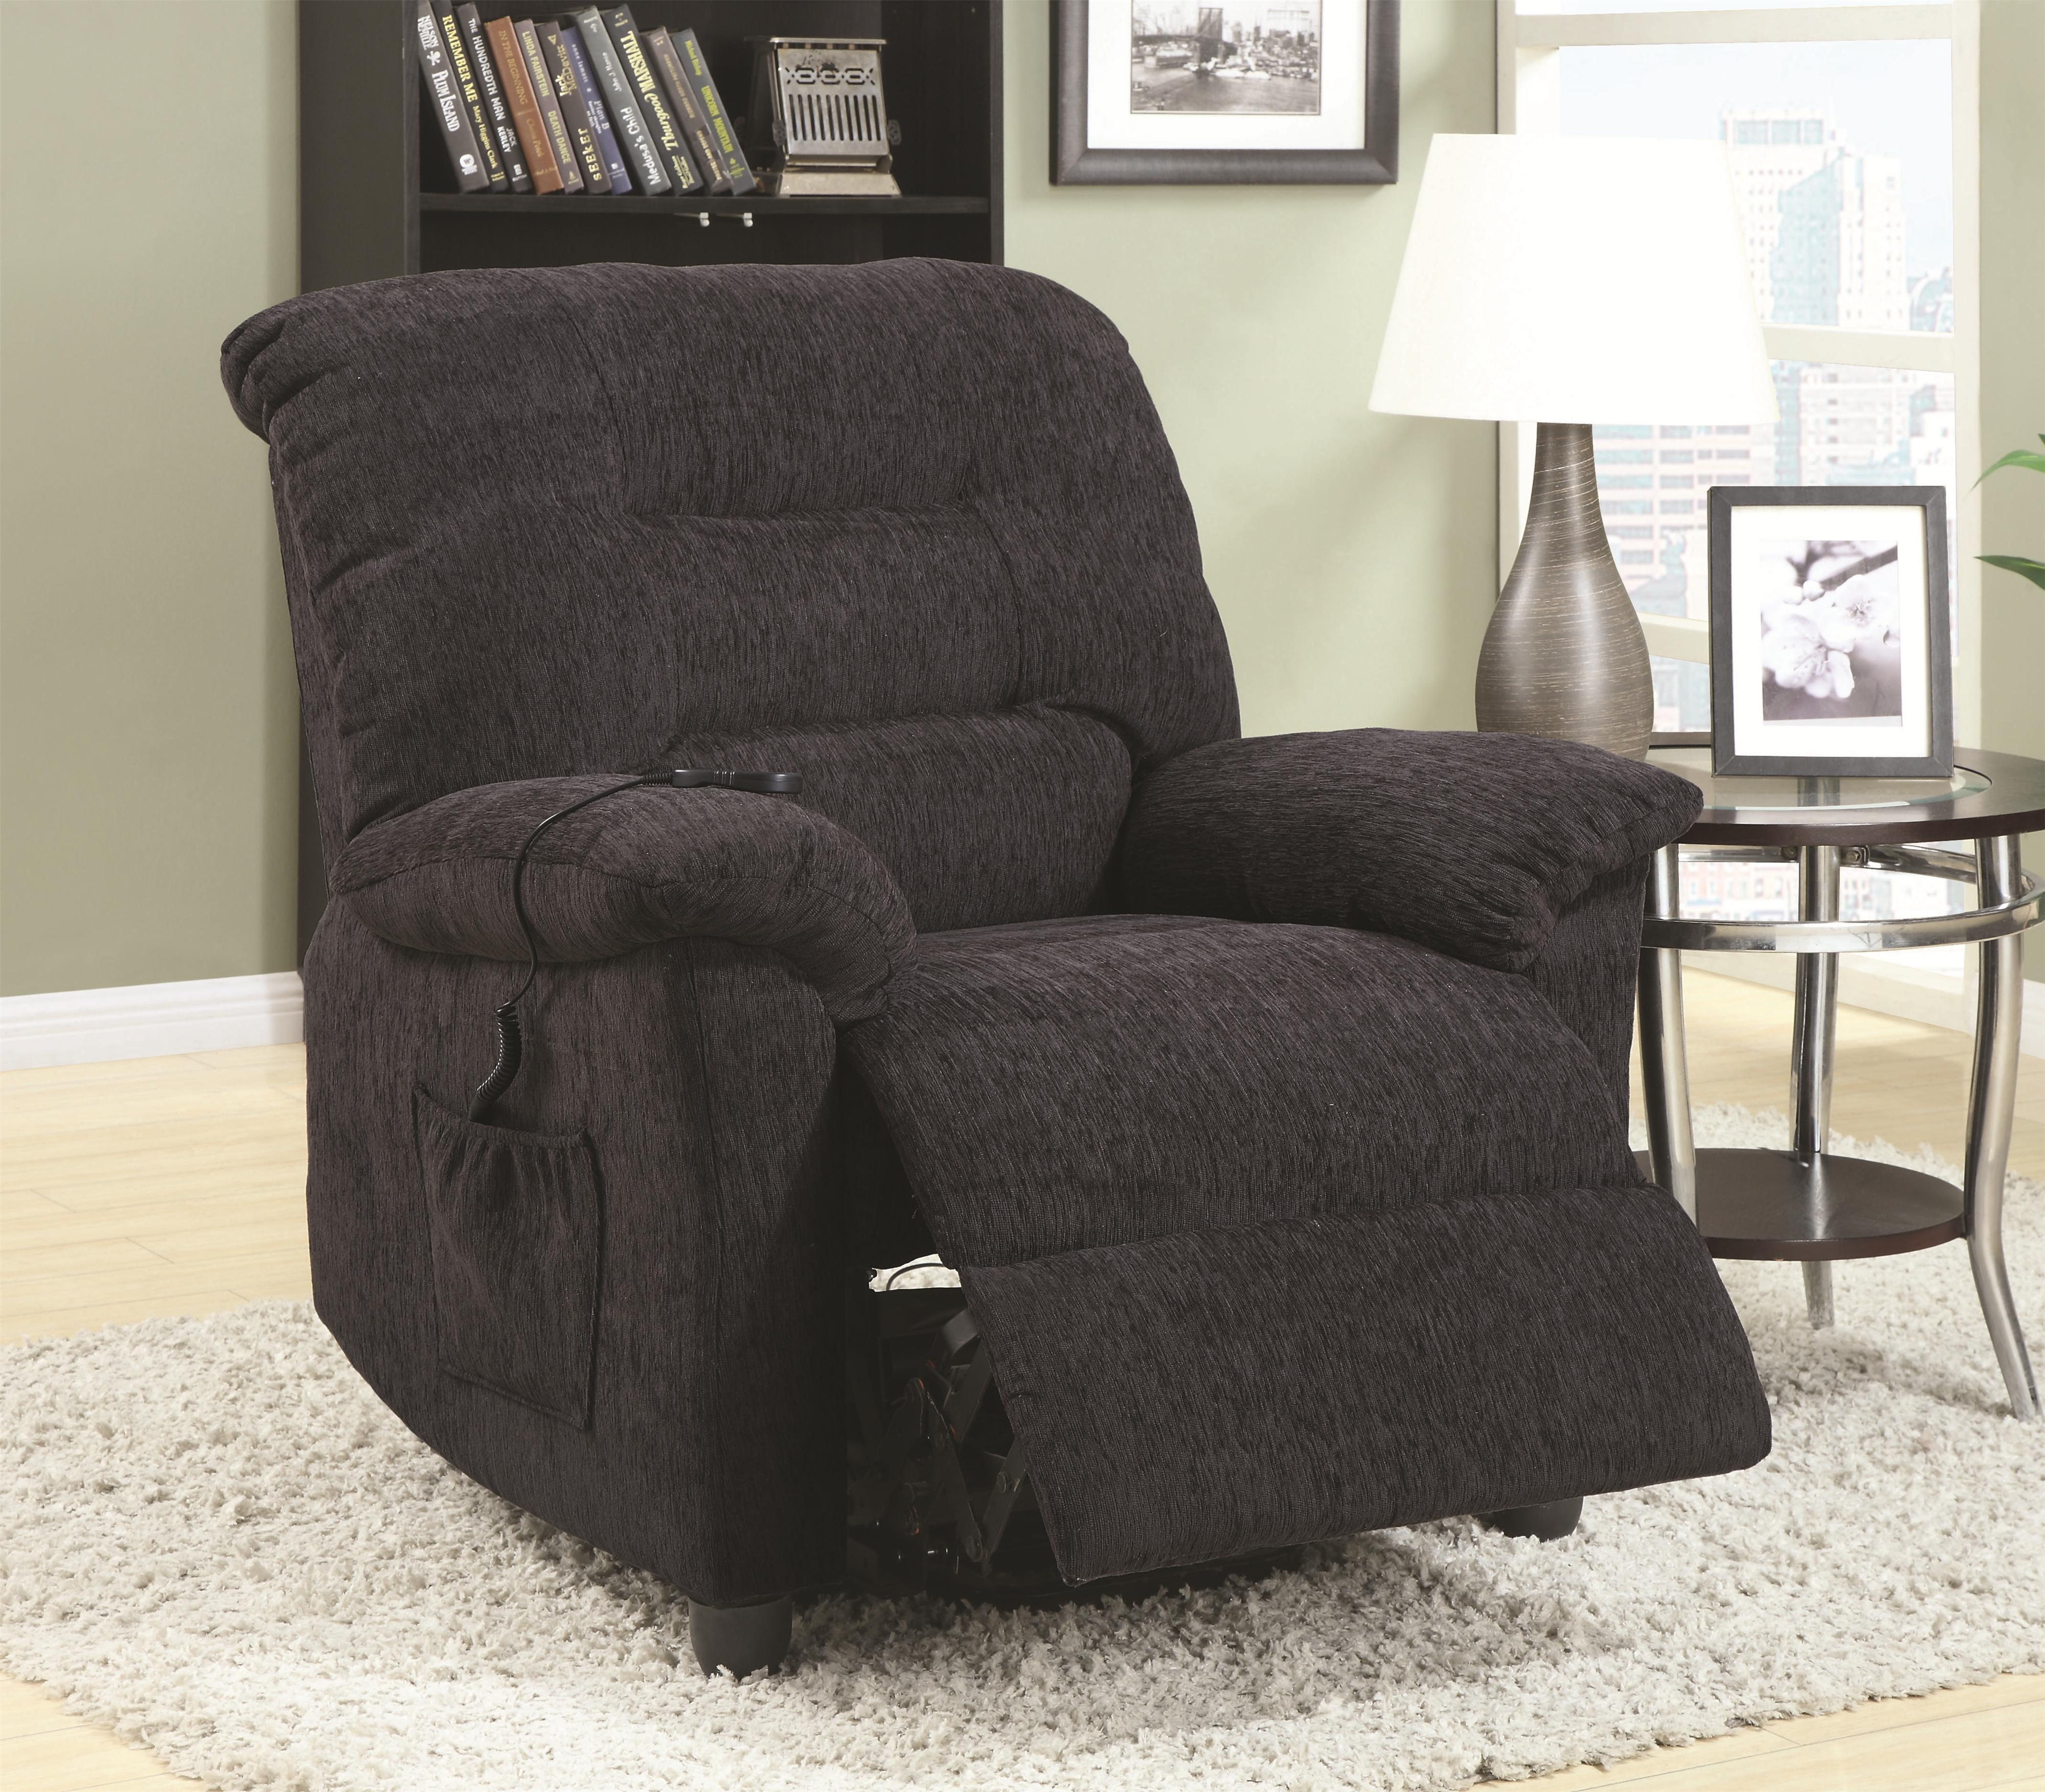 Coaster Recliners Power Lift Recliner - Item Number: 601015